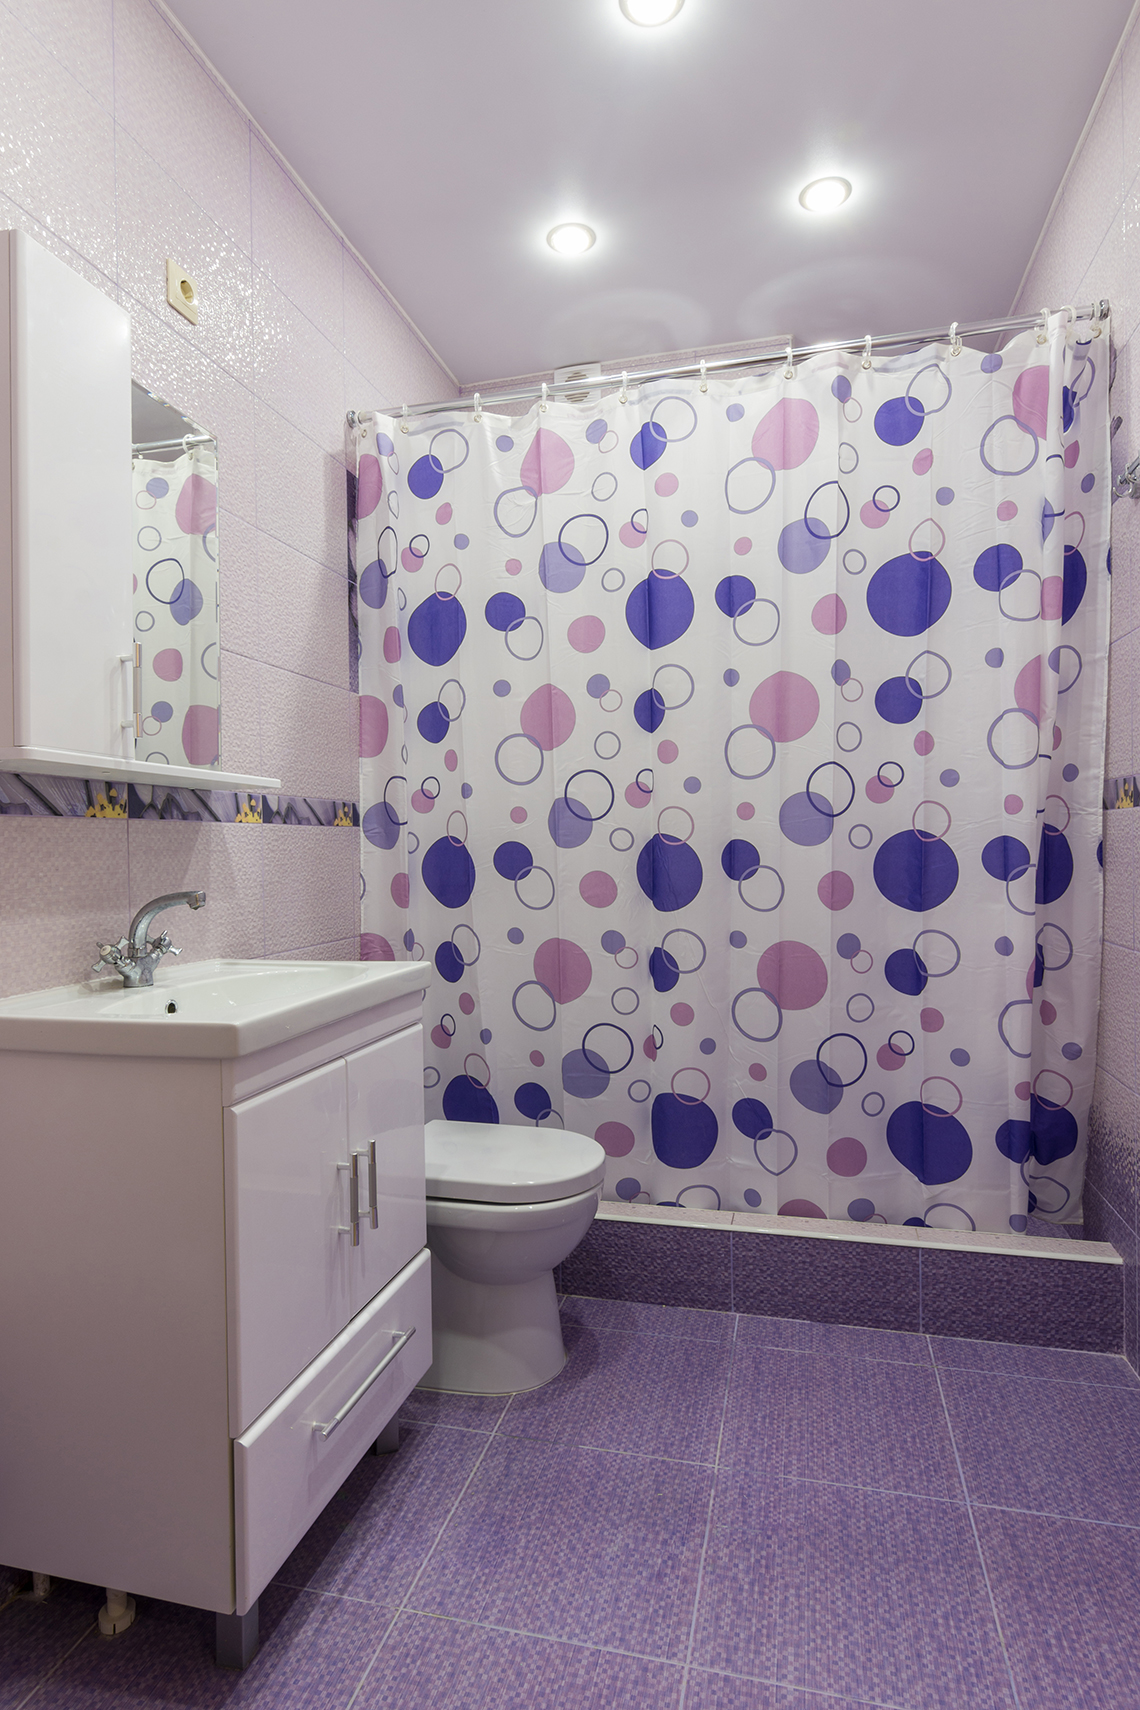 Bathroom upgrading tips on a budget